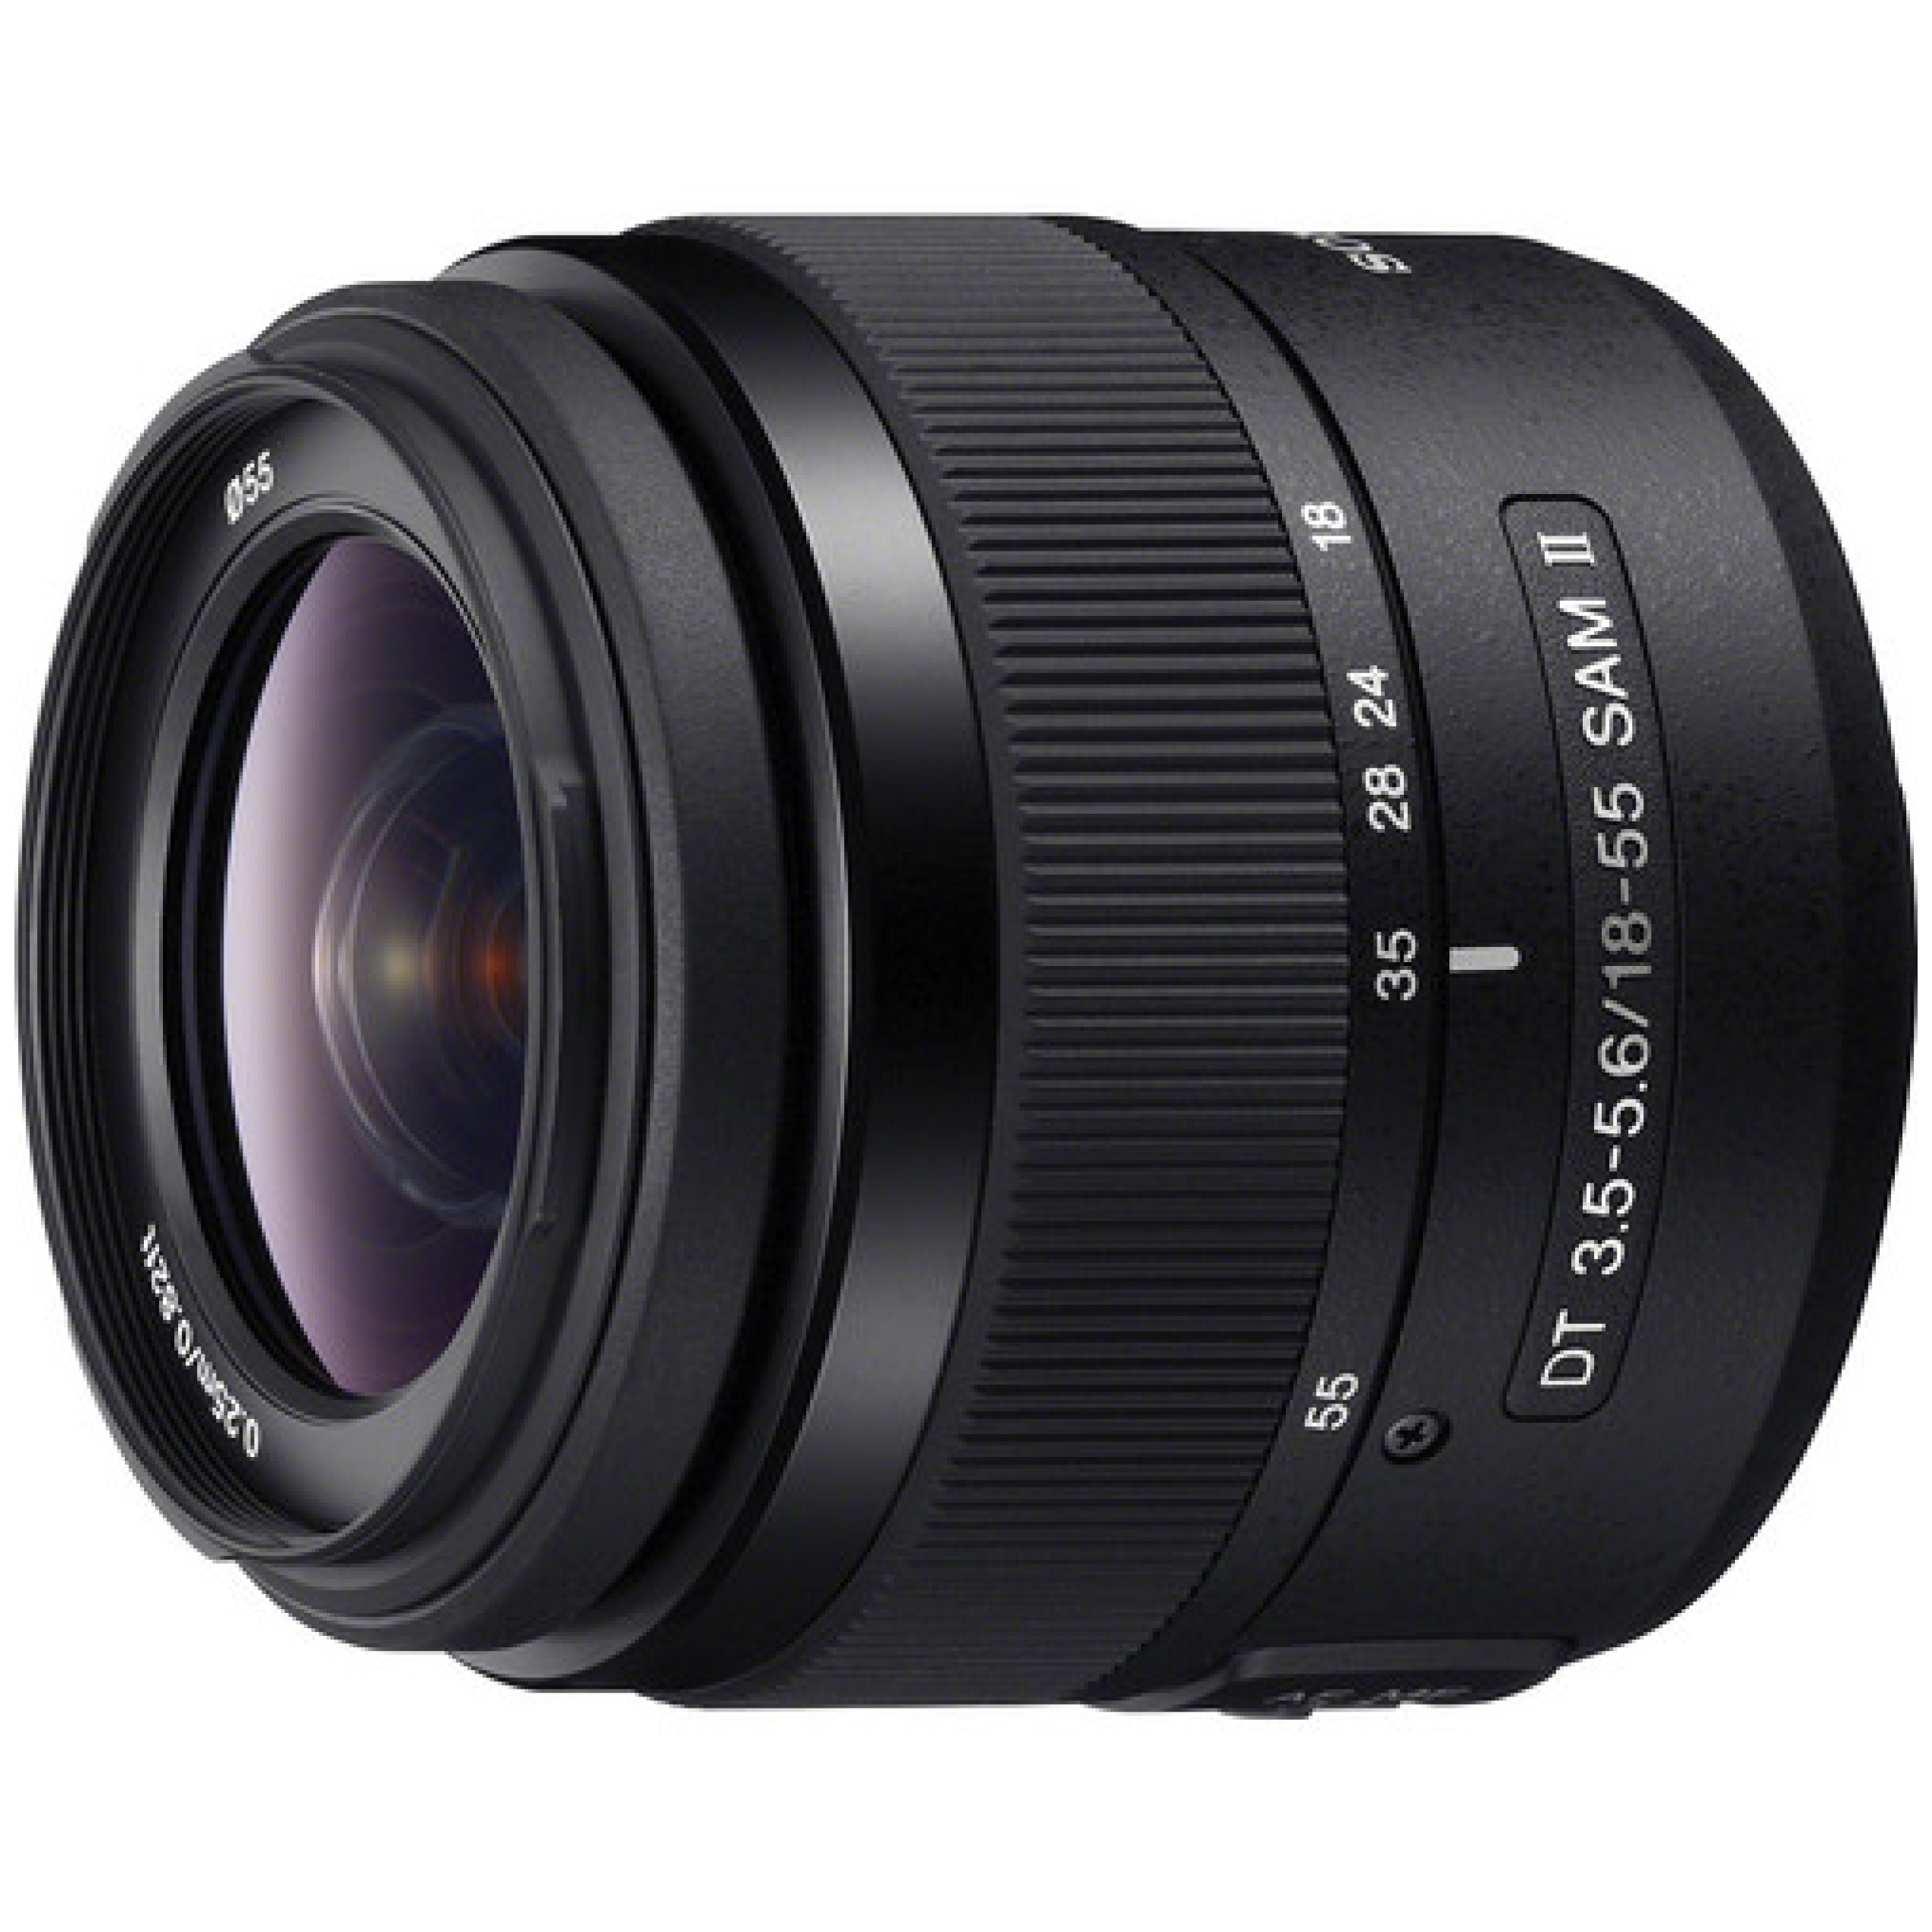 Sony DT 18-55mm f/3.5-5.6 SAM II